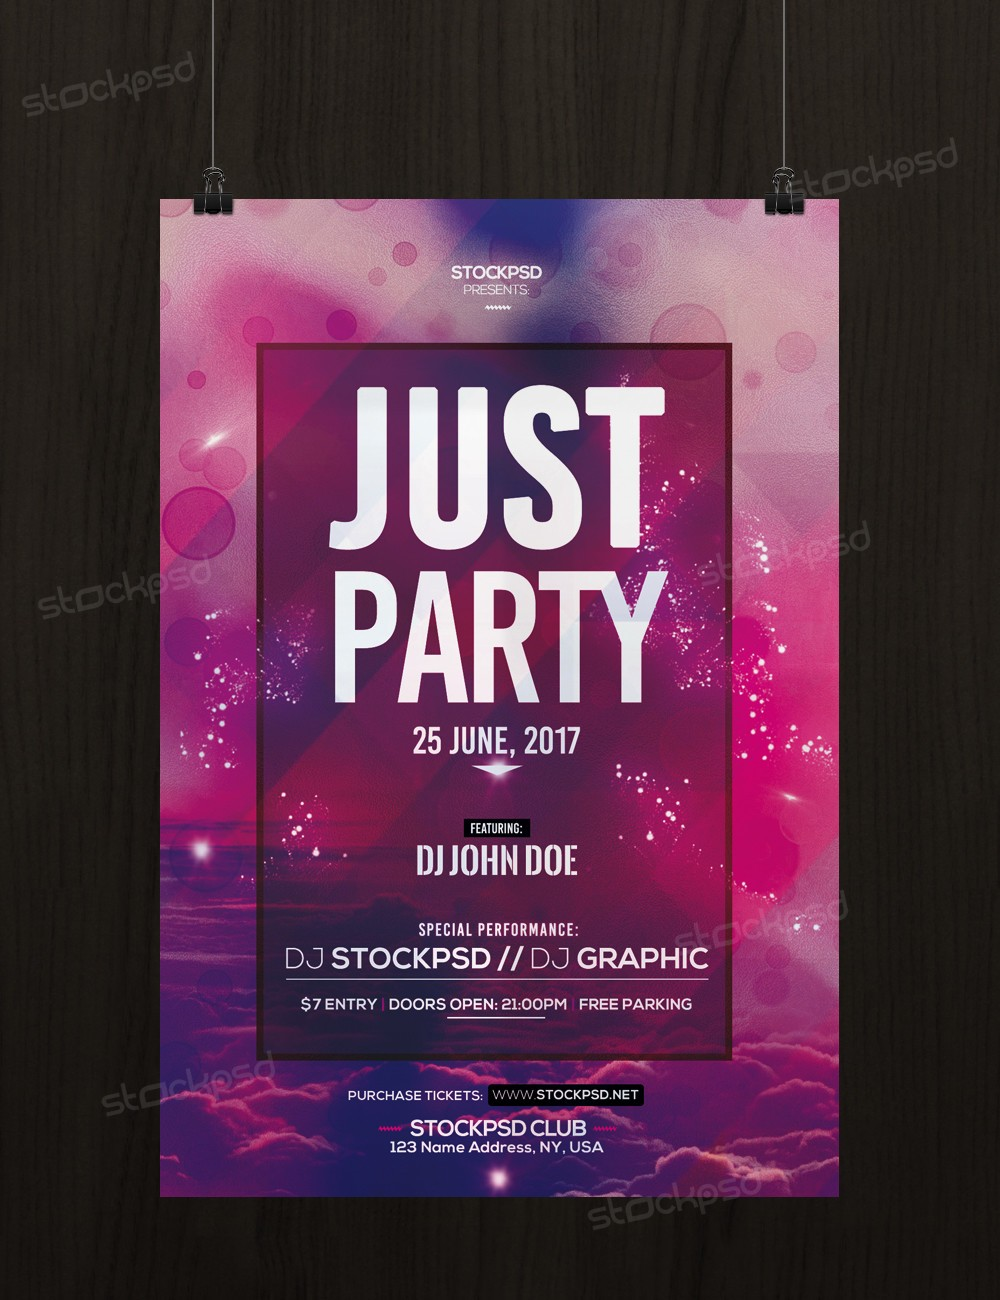 Just party download free psd flyer template stockpsd for Free psd flyer templates